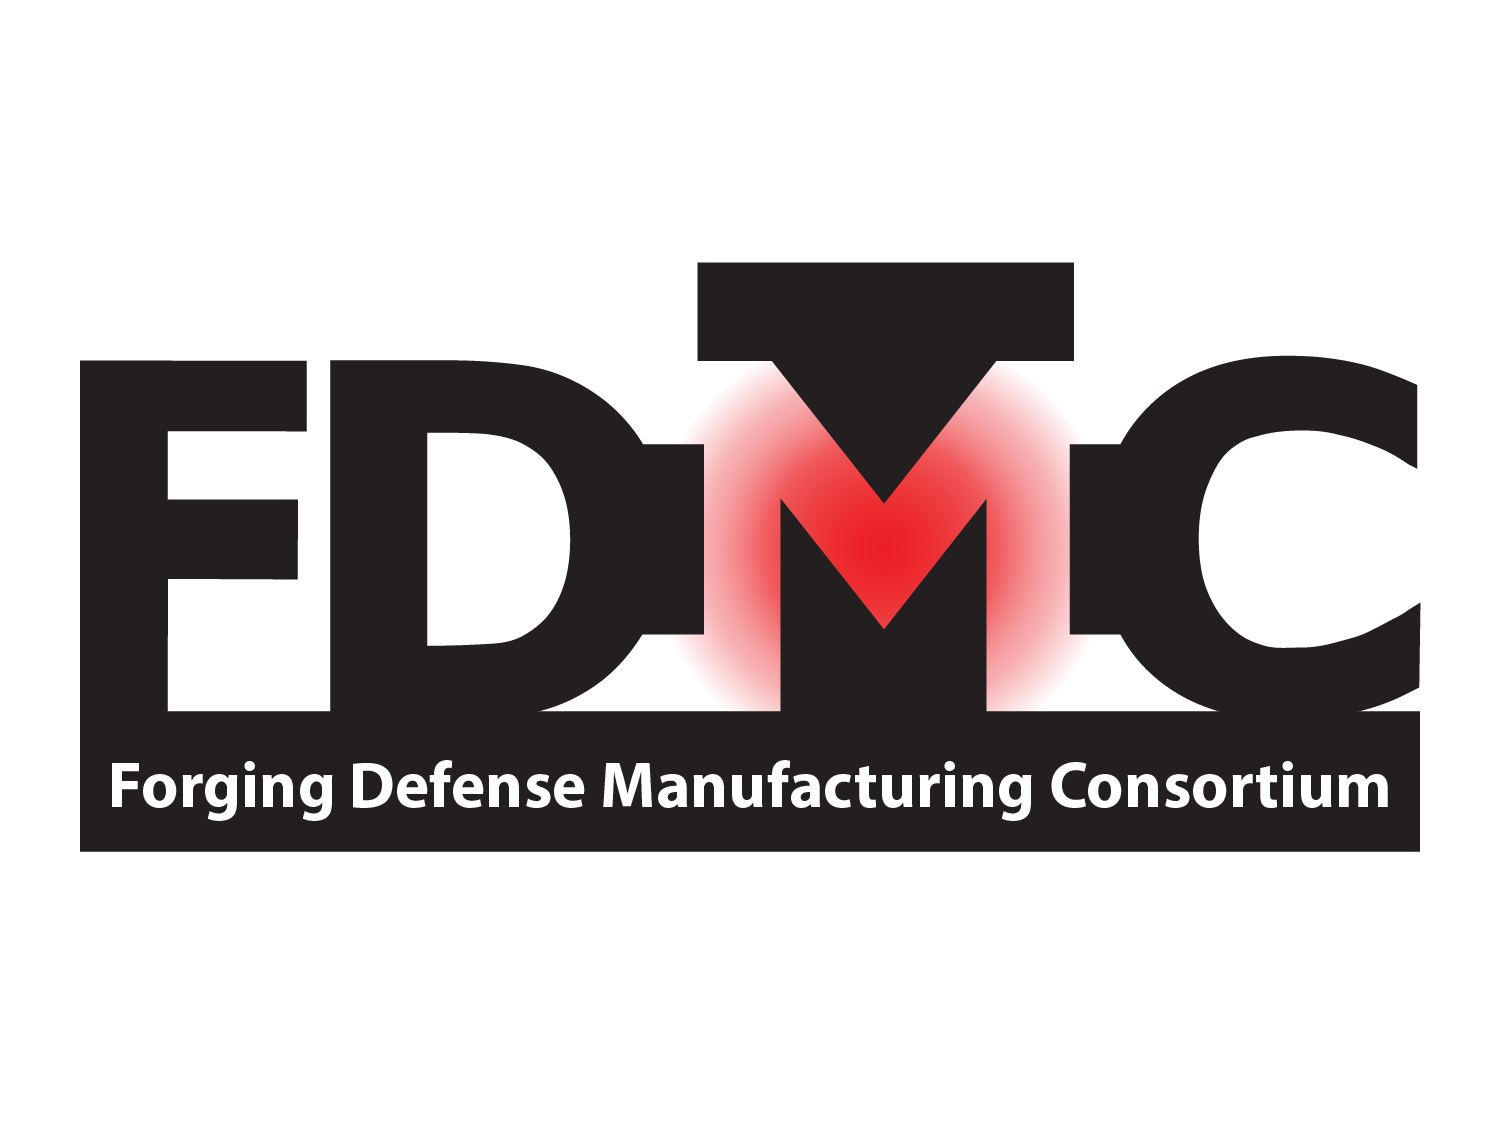 Forging Defense Manufacturing Consortium (FDMC)